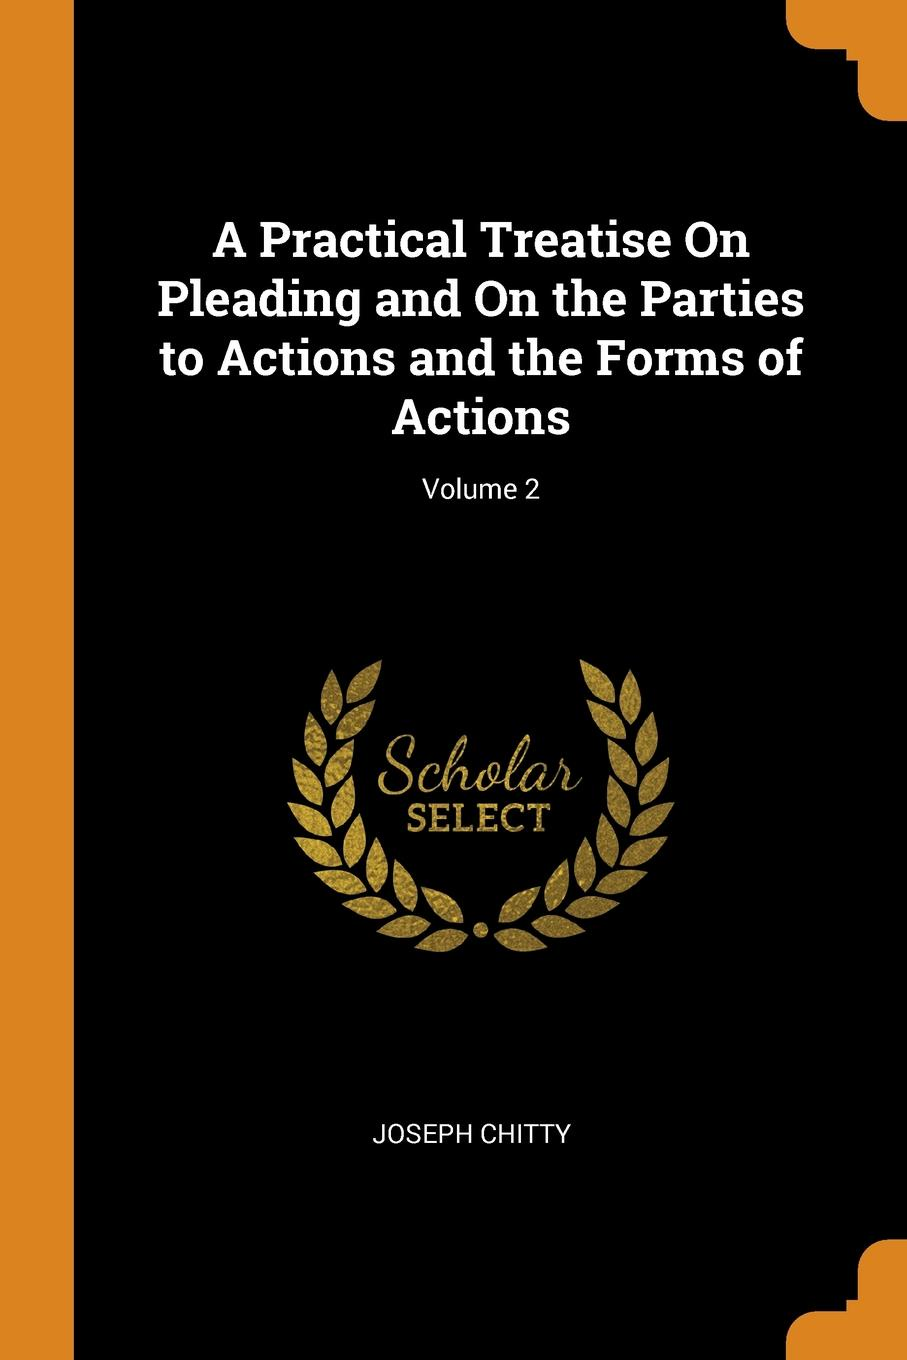 A Practical Treatise On Pleading and On the Parties to Actions and the Forms of Actions; Volume 2. Joseph Chitty